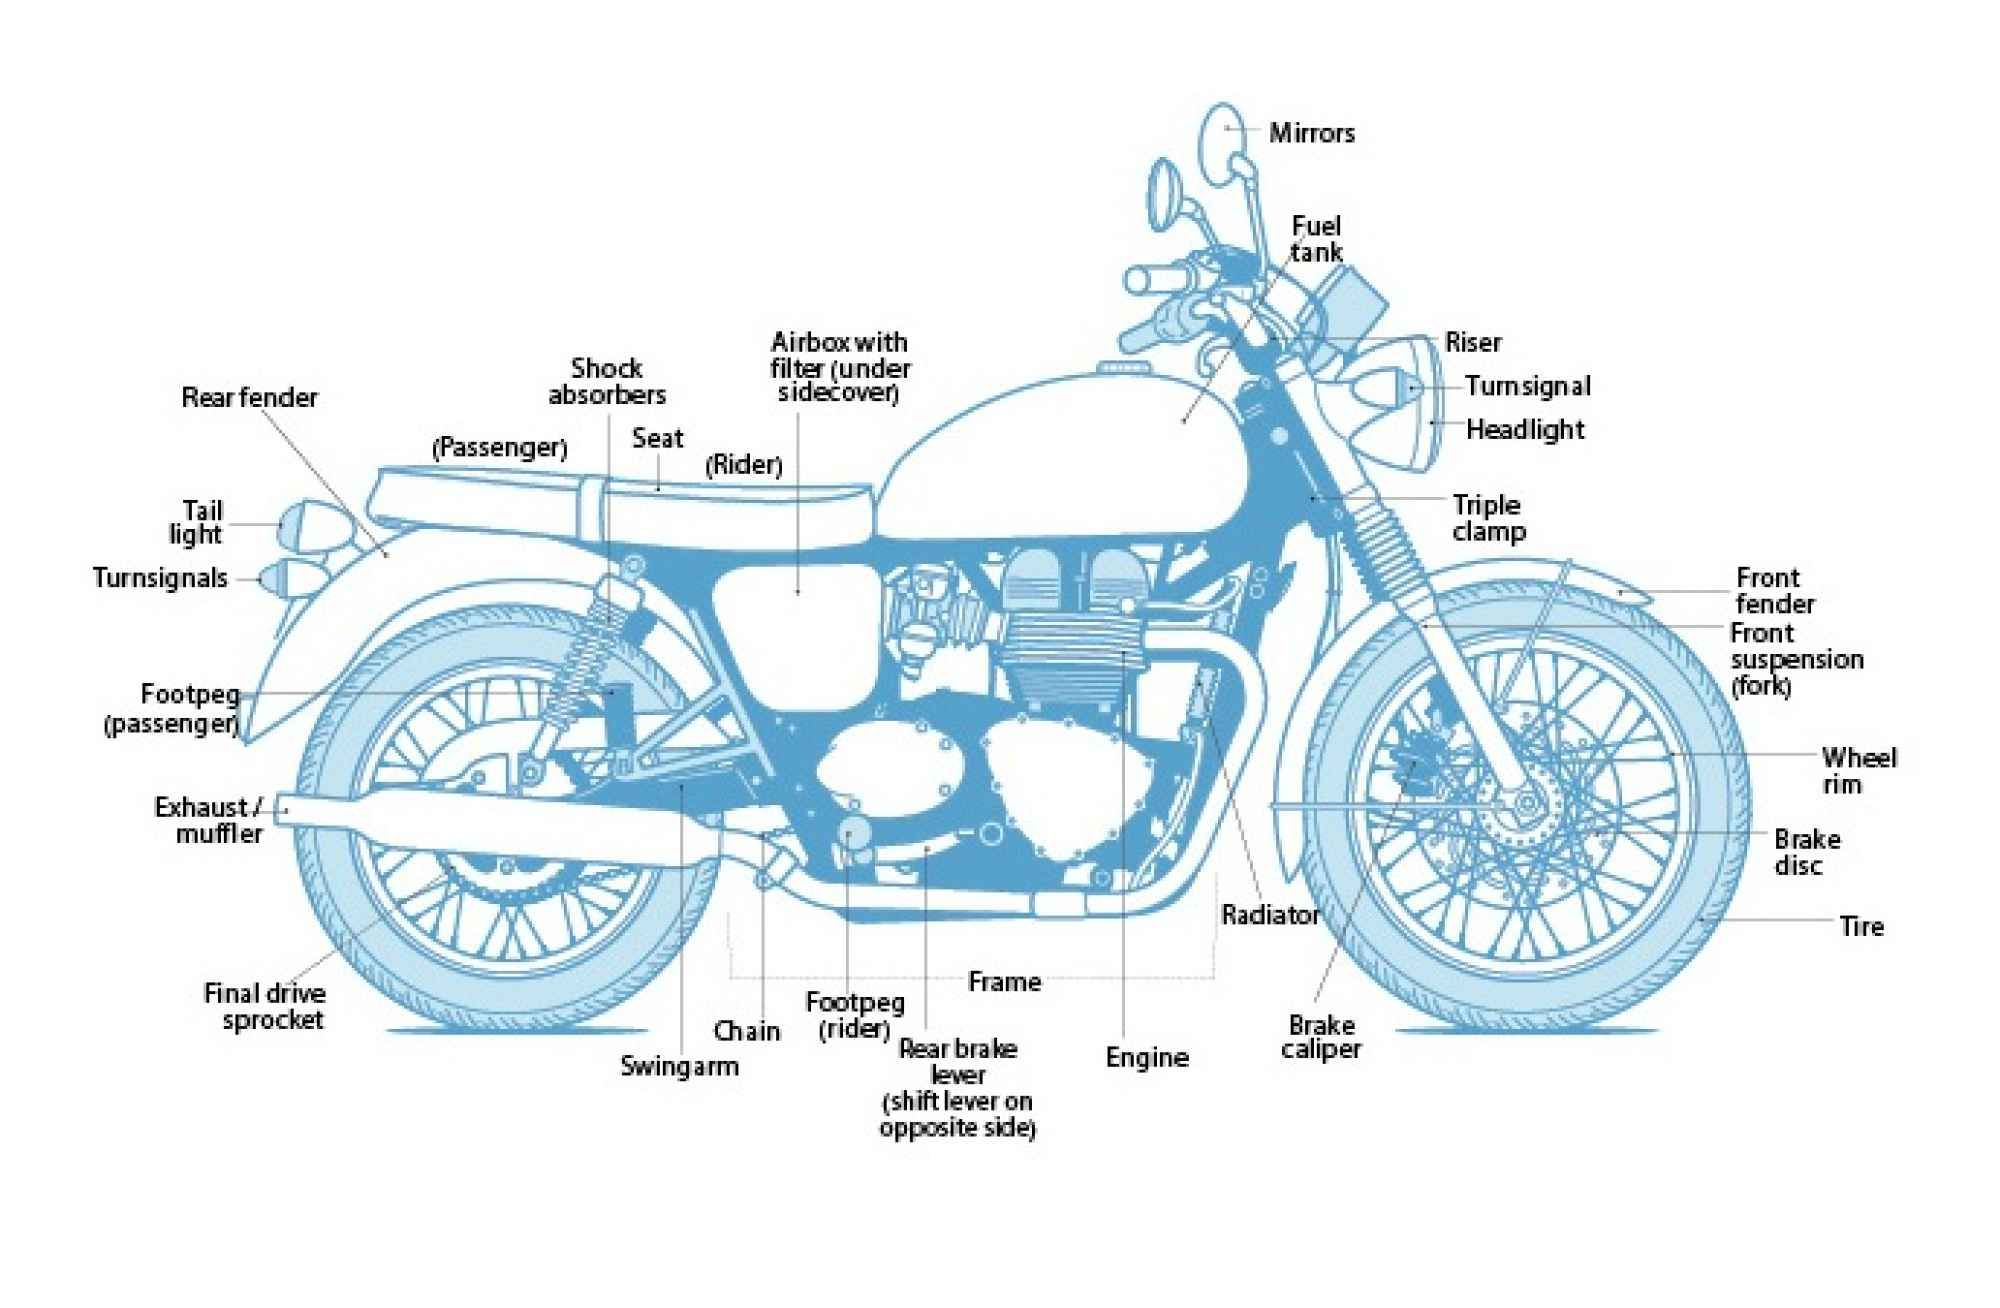 medium resolution of motorcycle diagram motorcycles motorcycle cafe racer bikes harley davidson motorcycle parts diagram